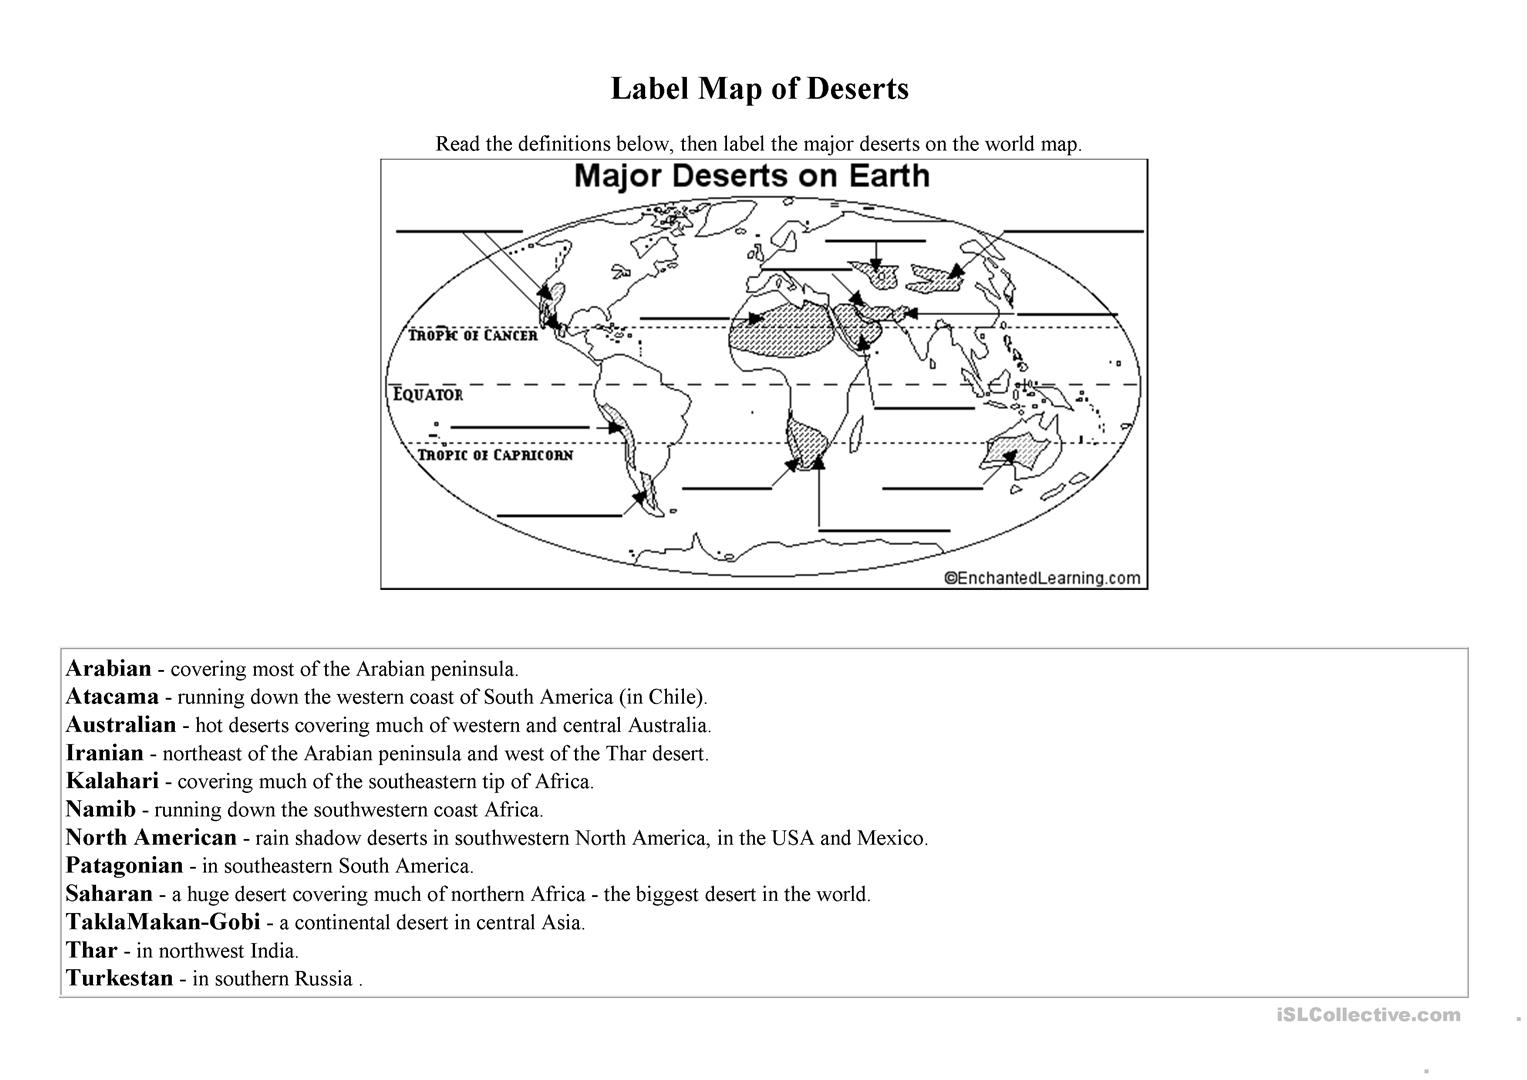 Label map of deserts of the world worksheet free esl printable label map of deserts of the world full screen gumiabroncs Images